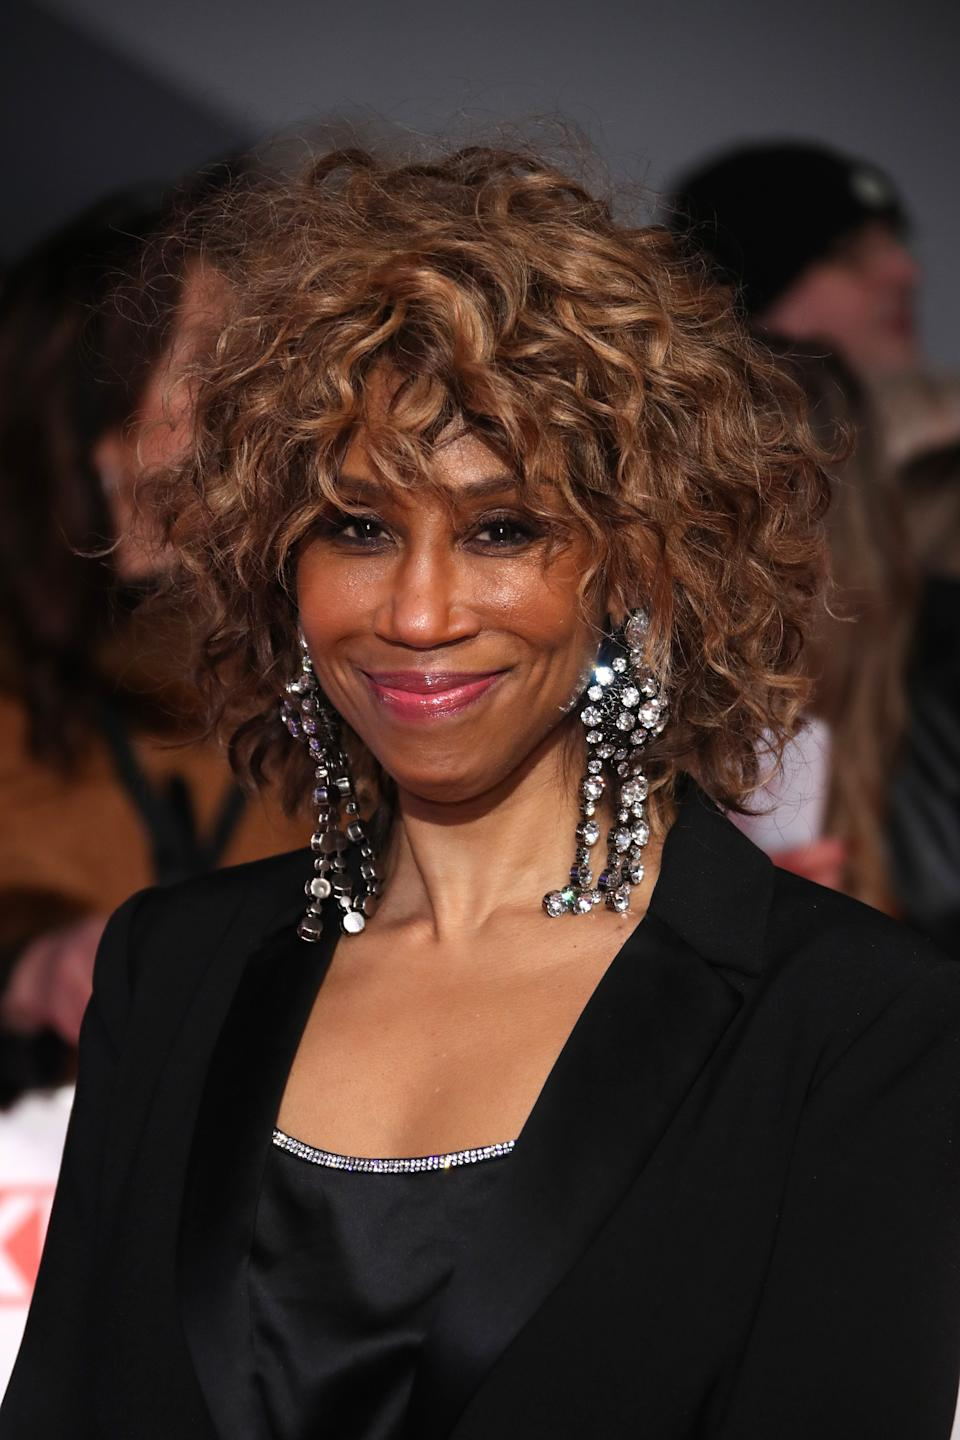 LONDON, ENGLAND - JANUARY 28: Trisha Goddard attends the National Television Awards 2020 at The O2 Arena on January 28, 2020 in London, England. (Photo by Mike Marsland/WireImage)